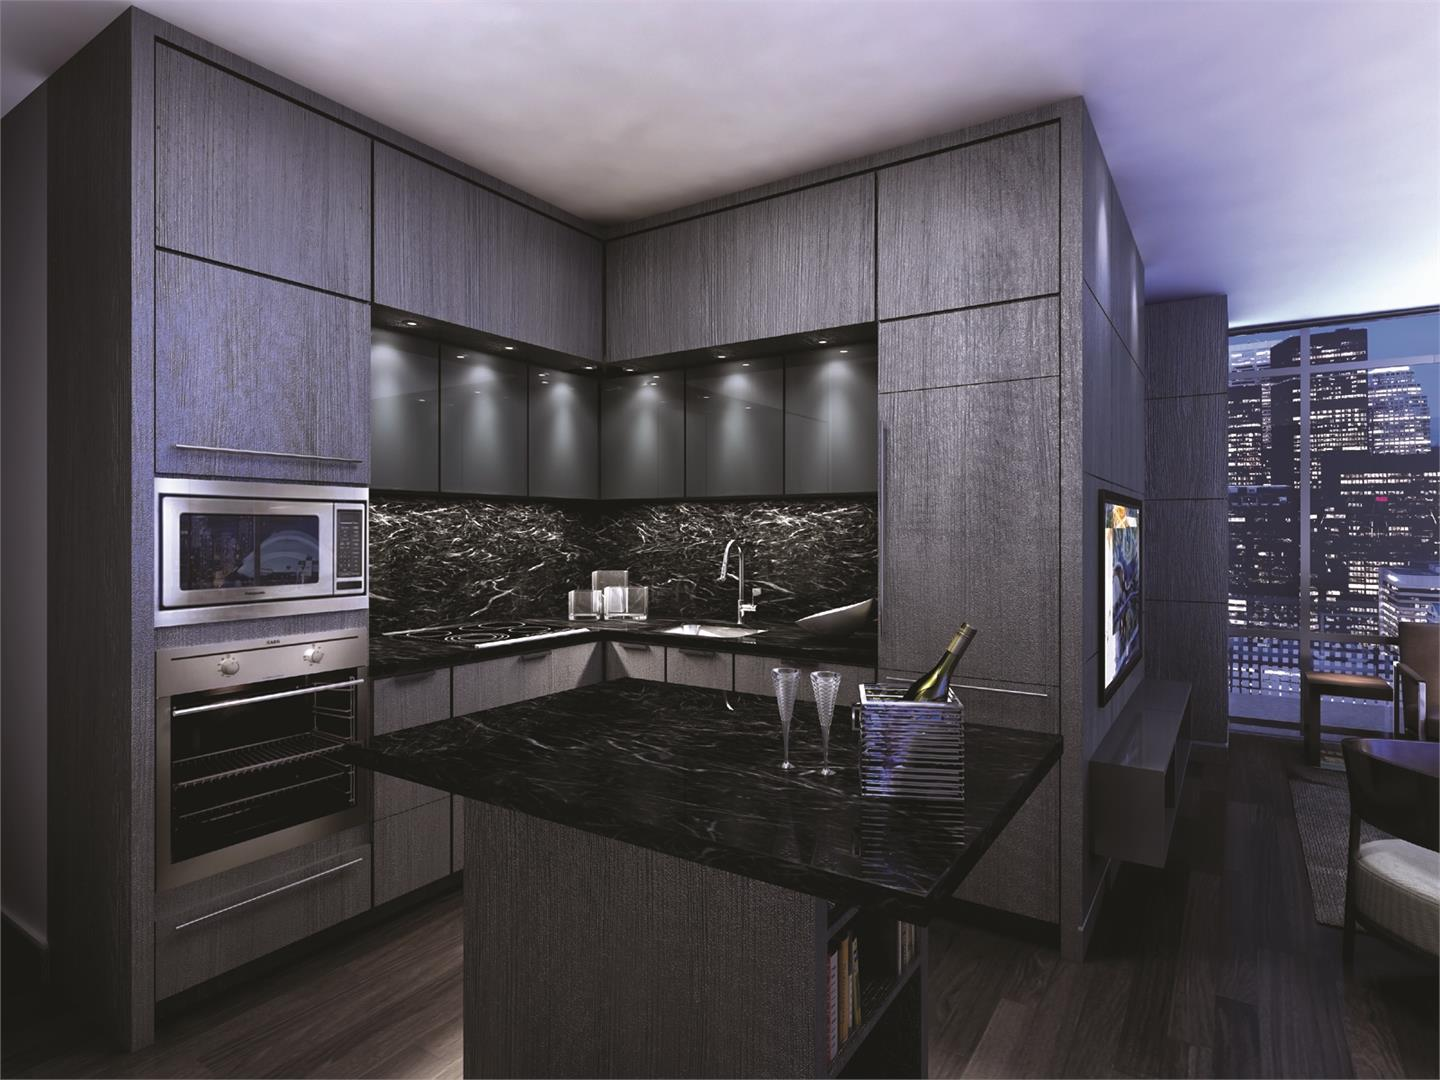 So here we see a 3d image of a typical King Blue kitchen.